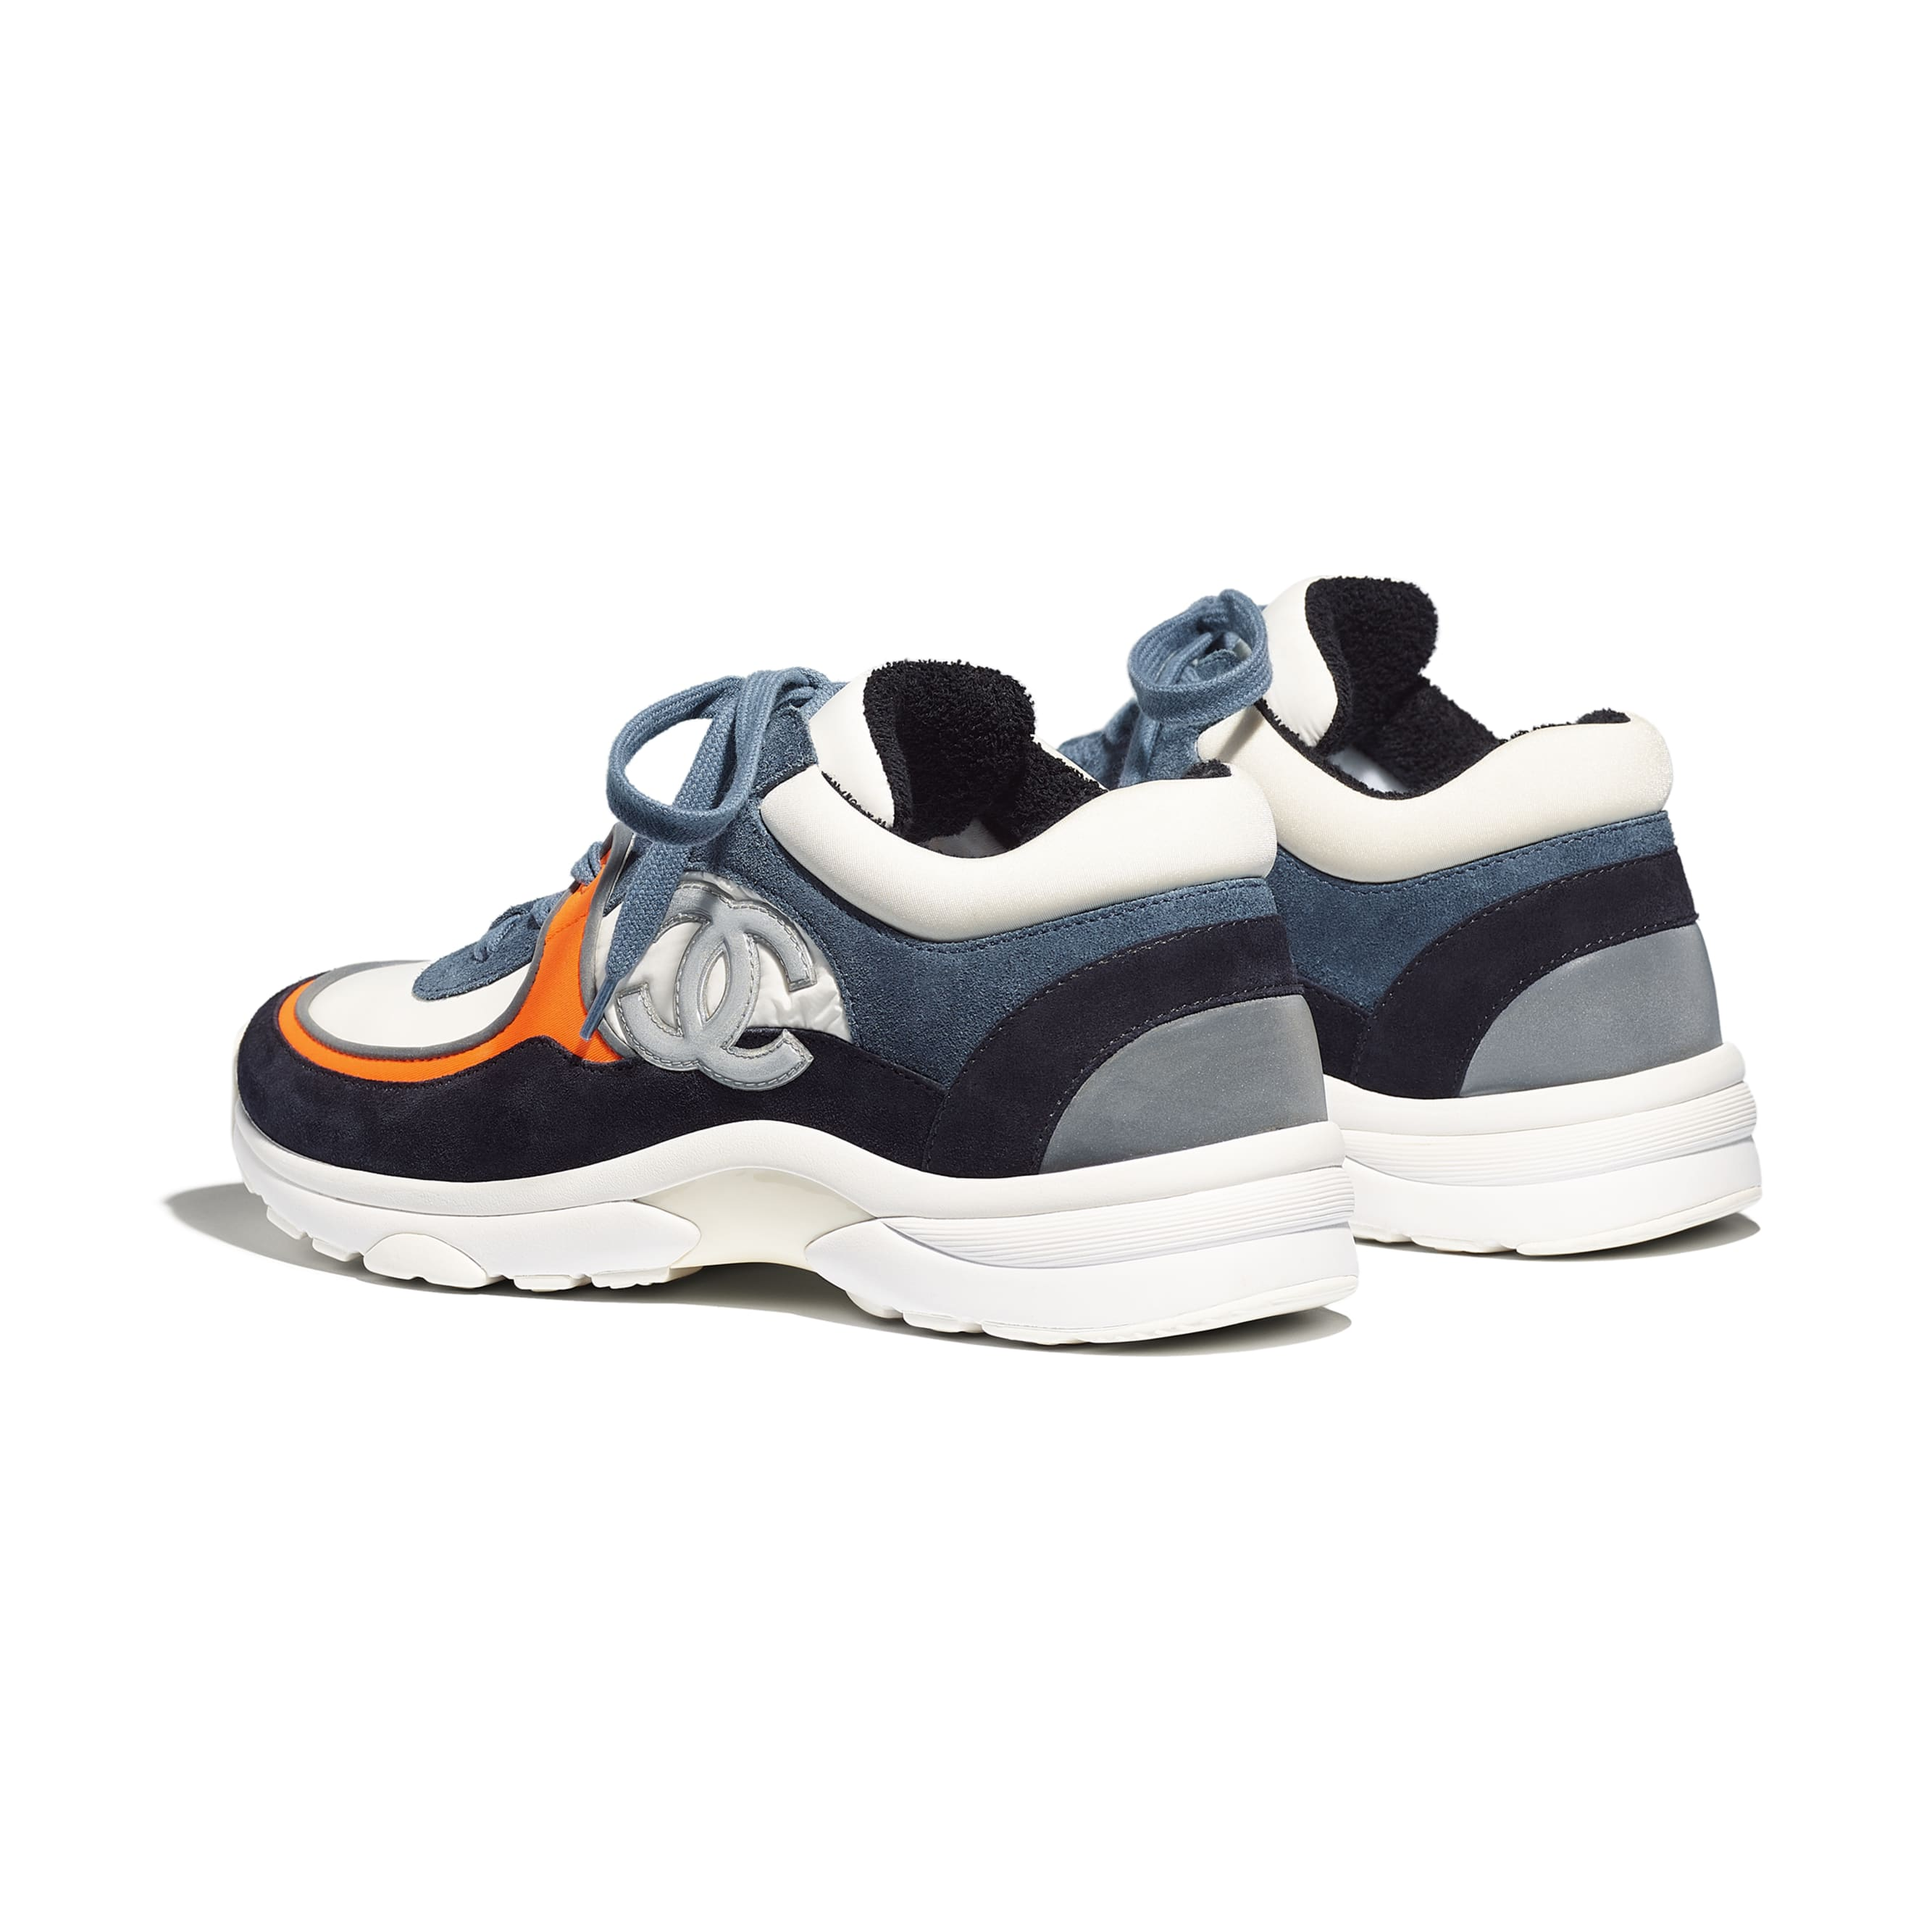 Trainers - White & Navy Blue - Calfskin & Mixed Fibers - Other view - see standard sized version